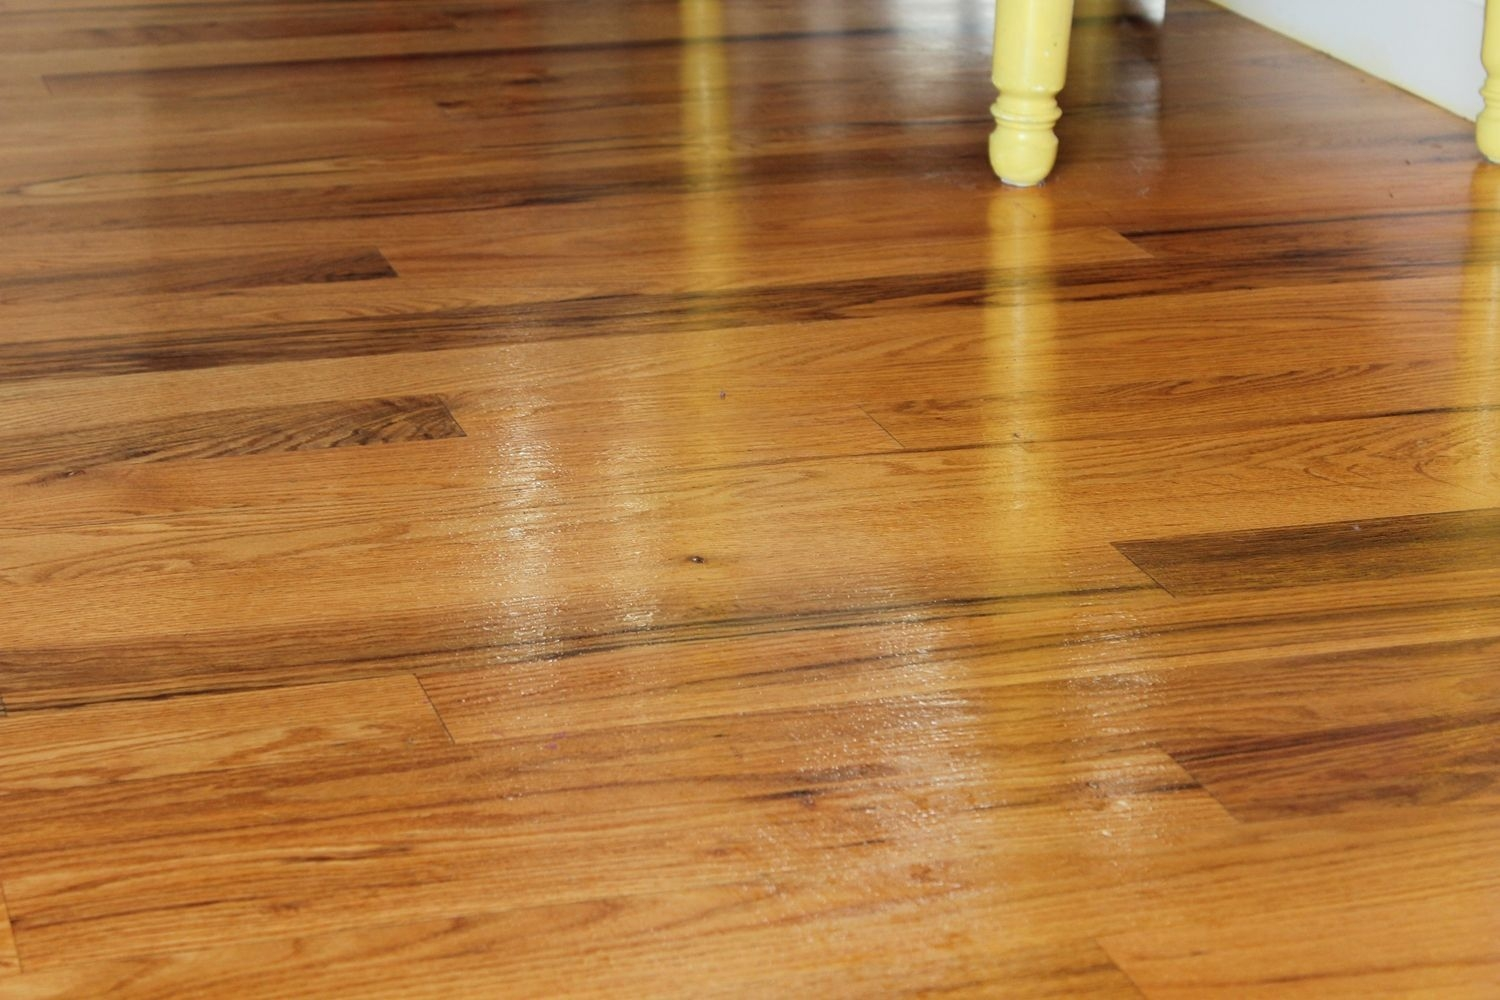 Permalink to Wood Floor Shine Natural